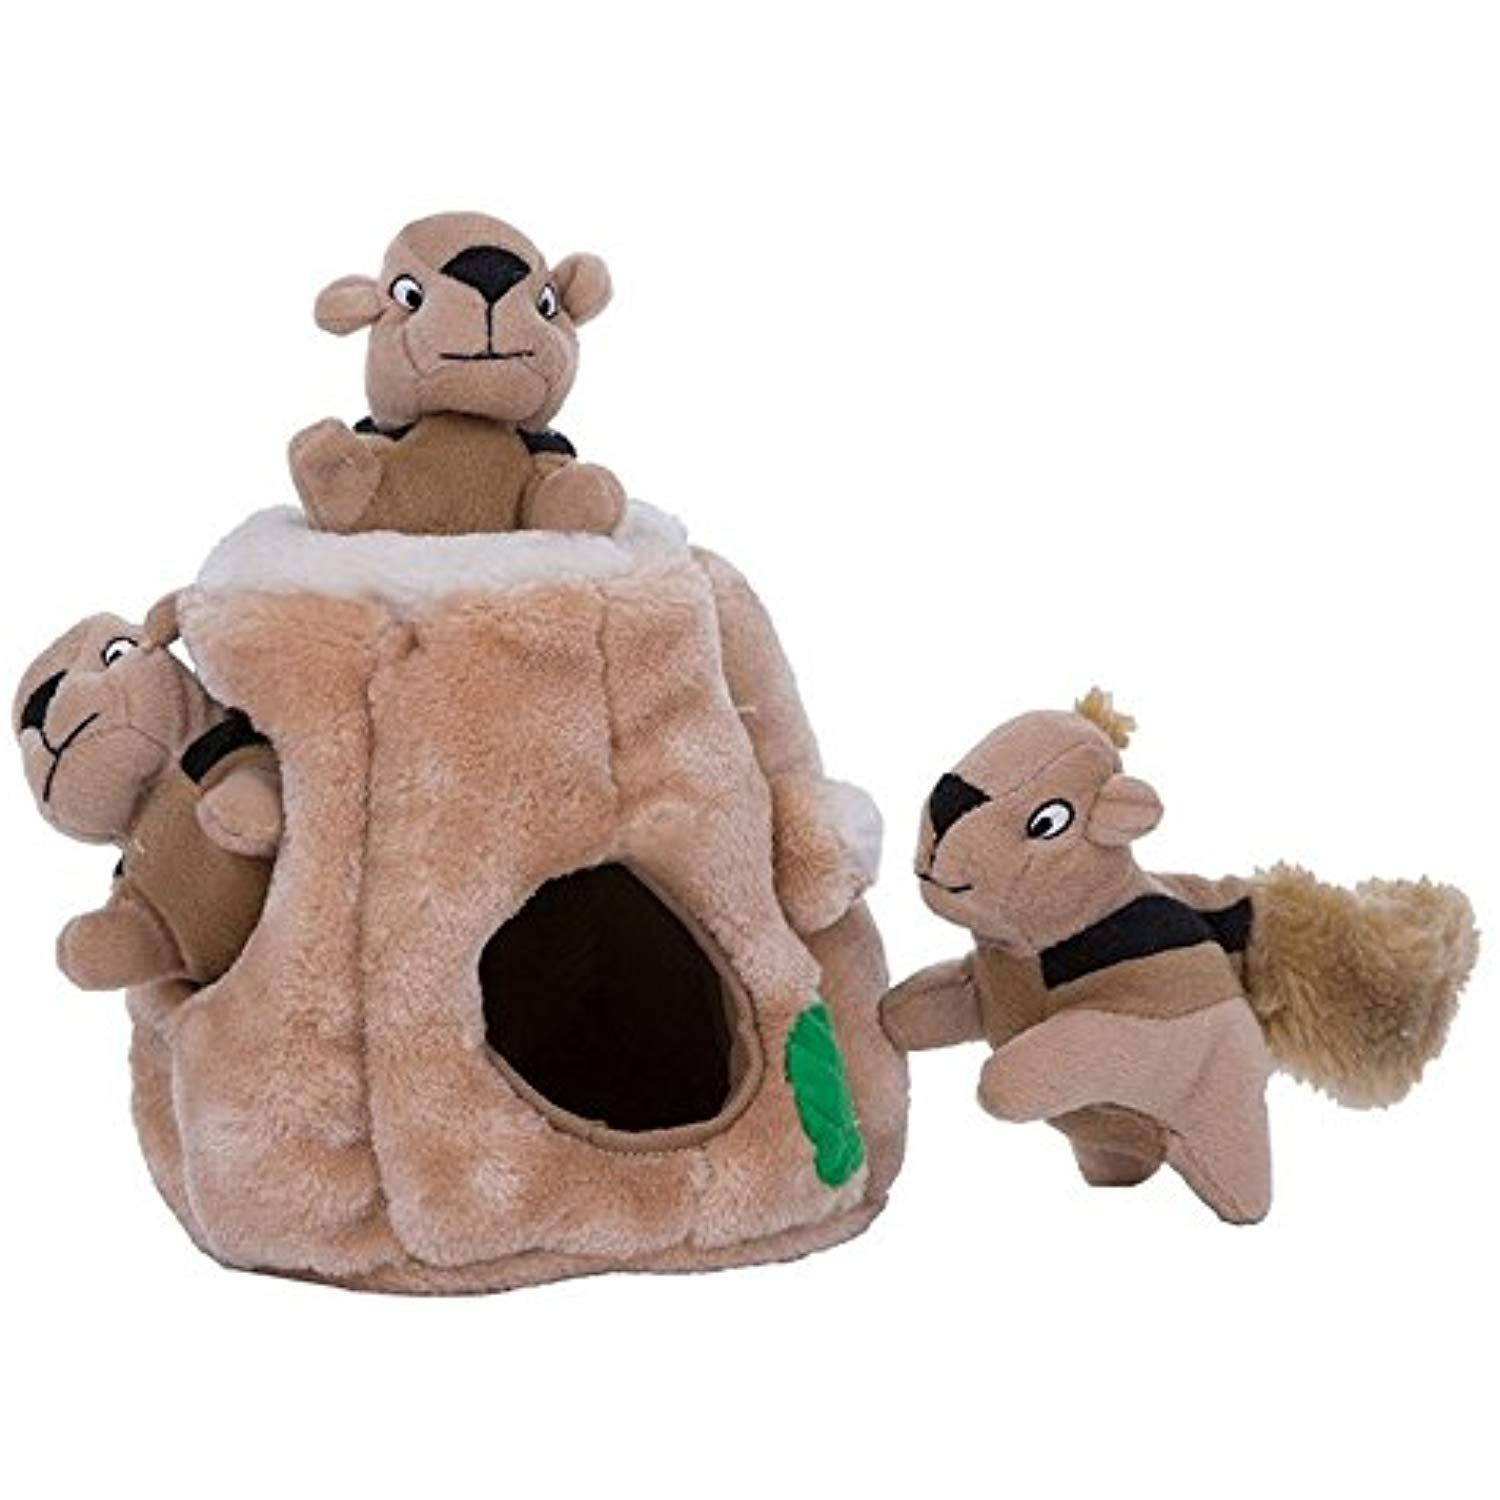 Outward Hound Hide A Squirrel Dog Toy Details Can Be Found By